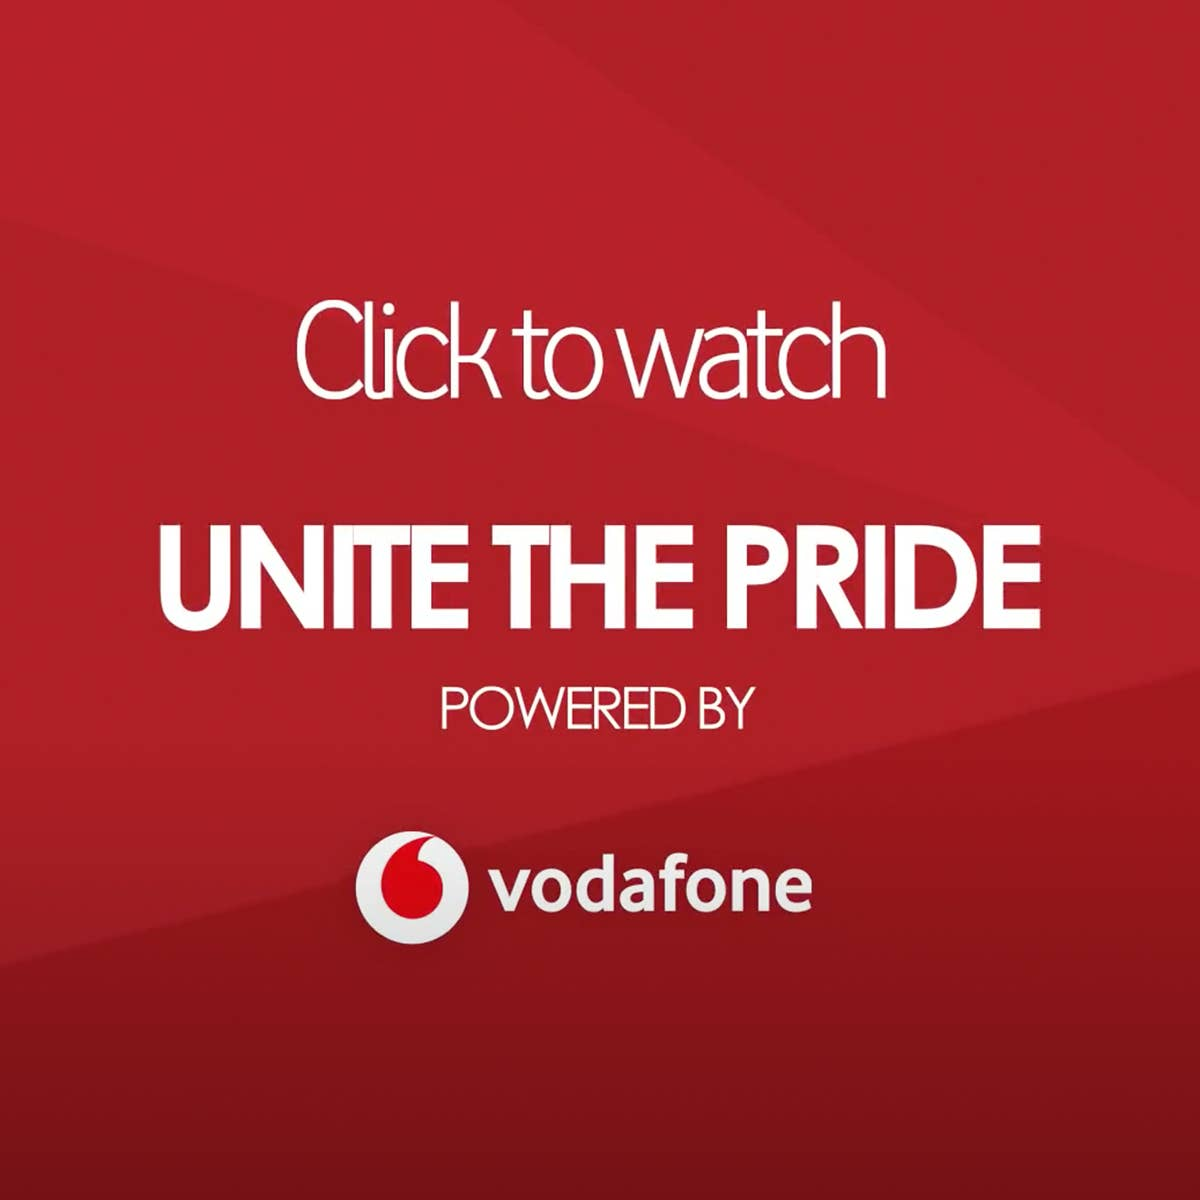 #UnitethePride with Vodafone's sponsorship of The British & Irish Lions